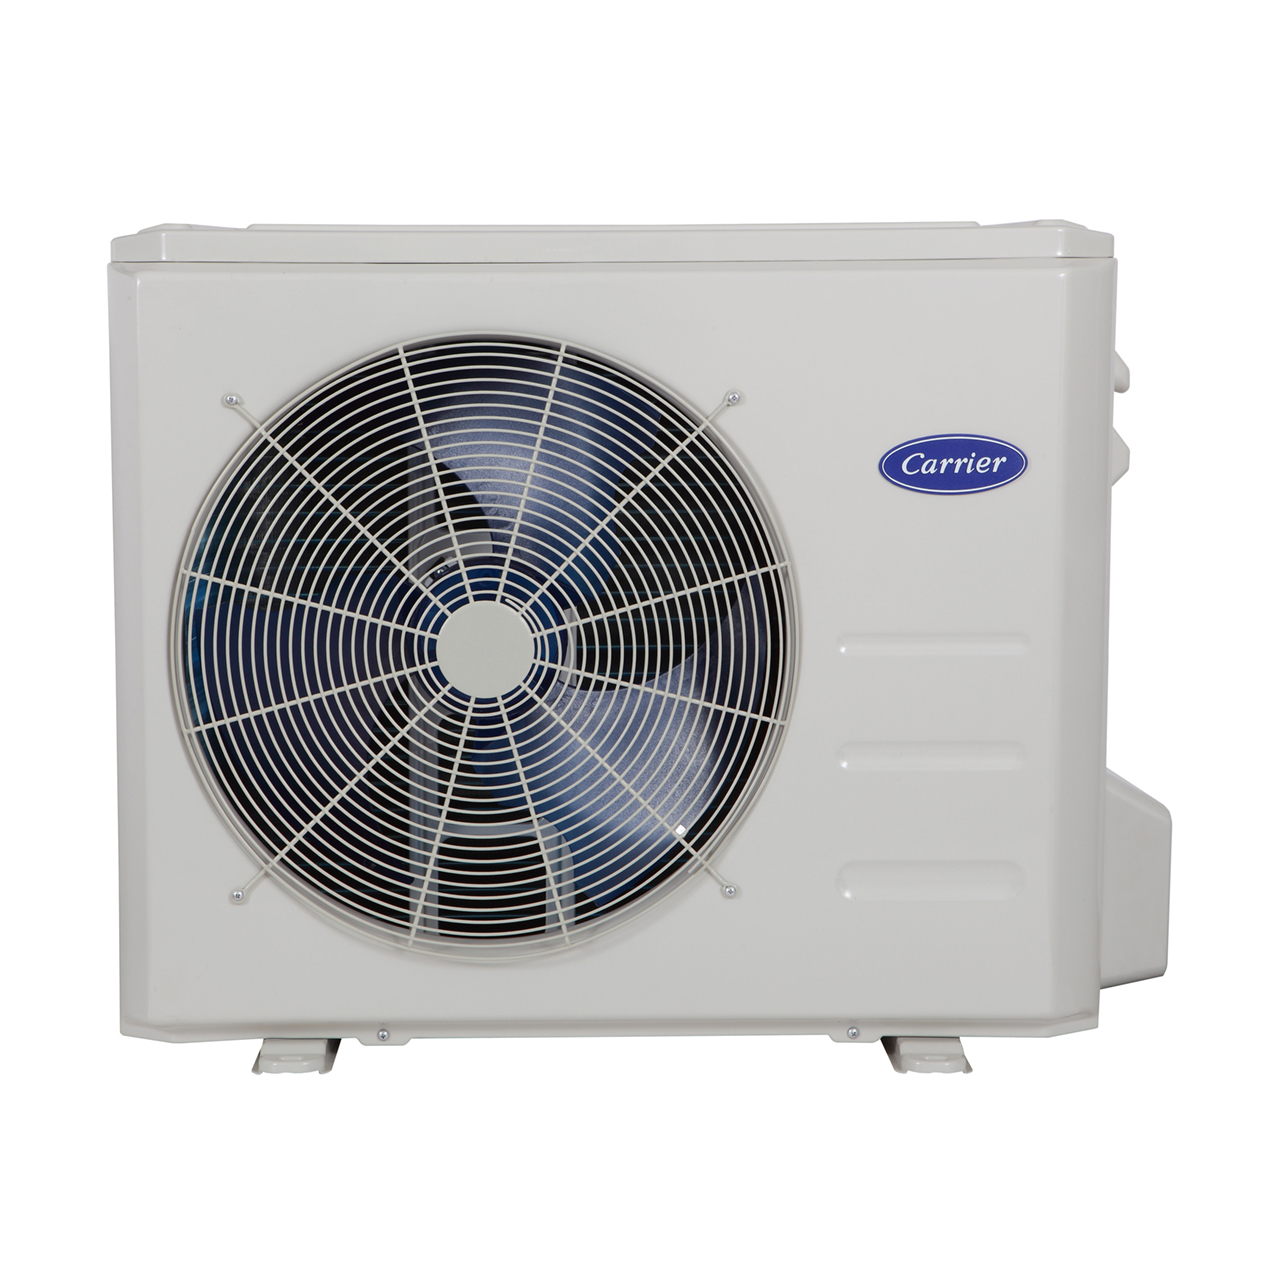 carrier-38mhrbc-ductless-system-single-zone-air-conditioner